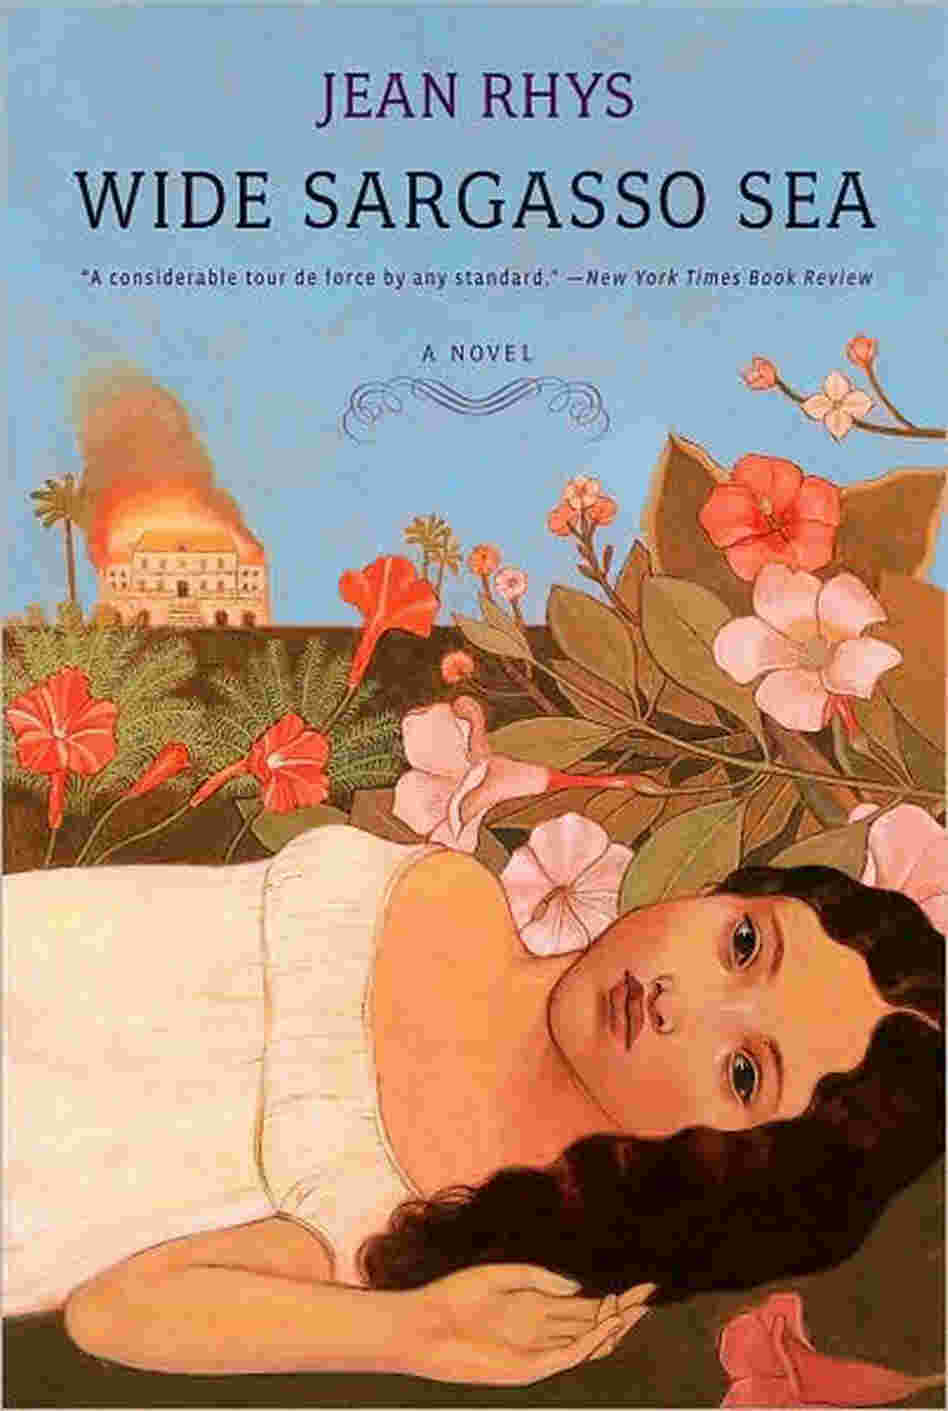 'Wide Sargasso Sea' book cover